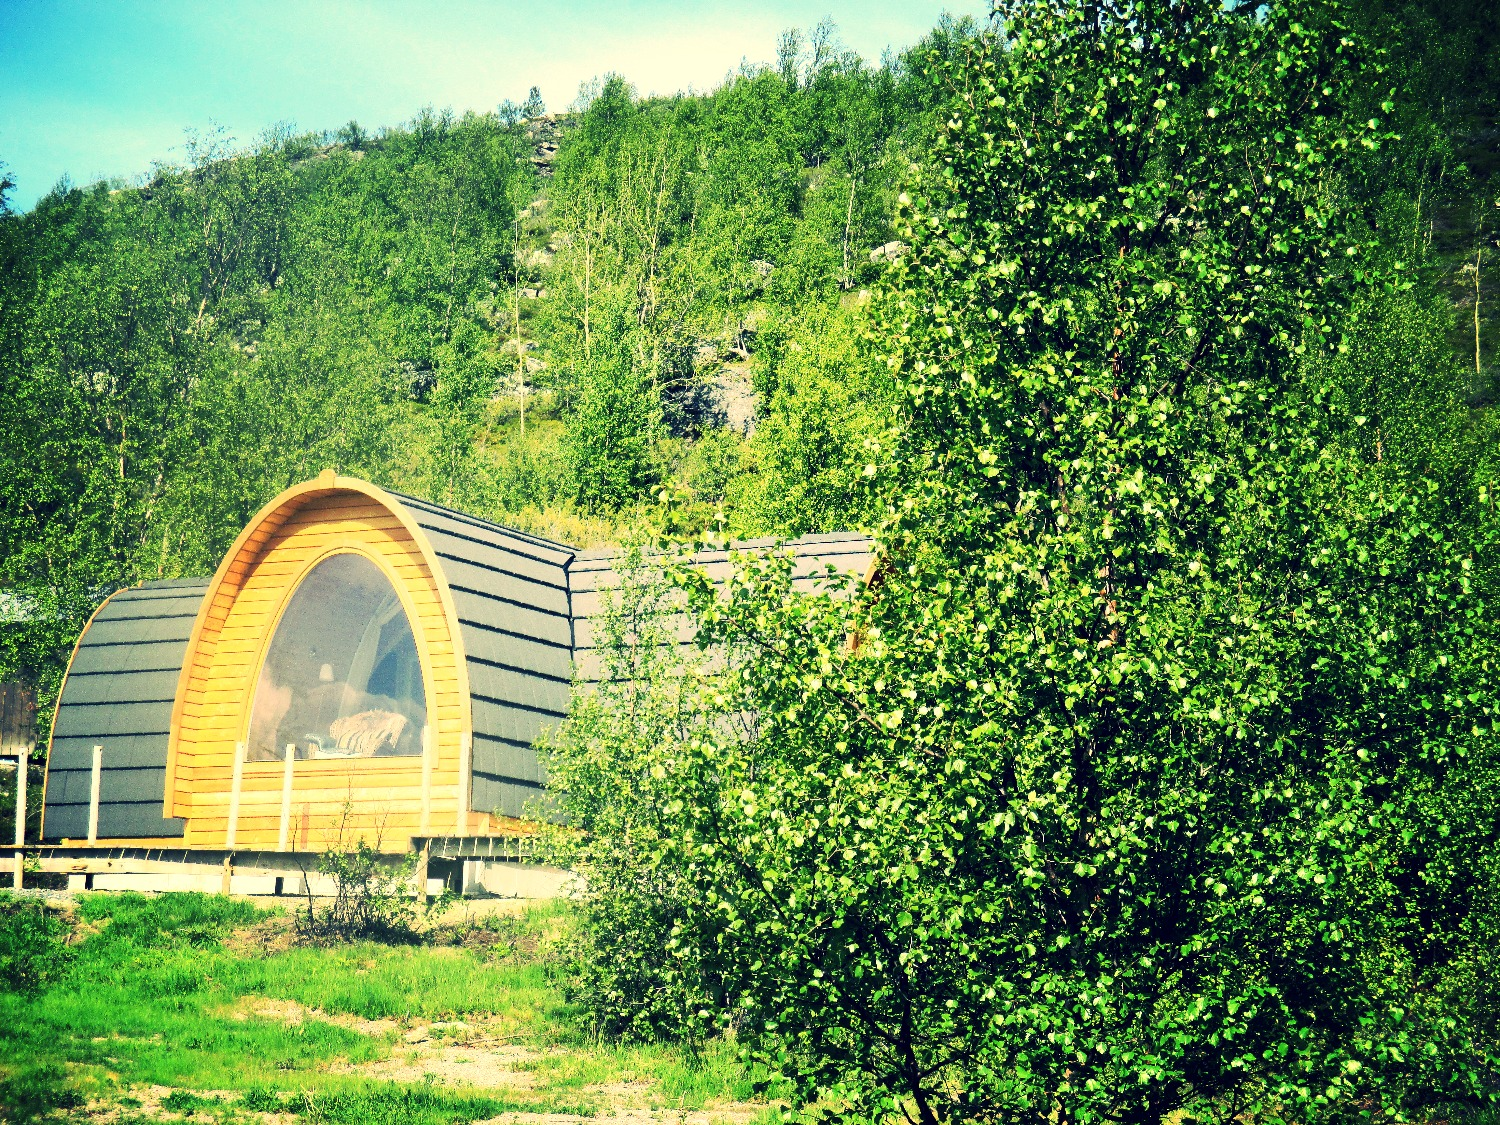 Cabins in summer time